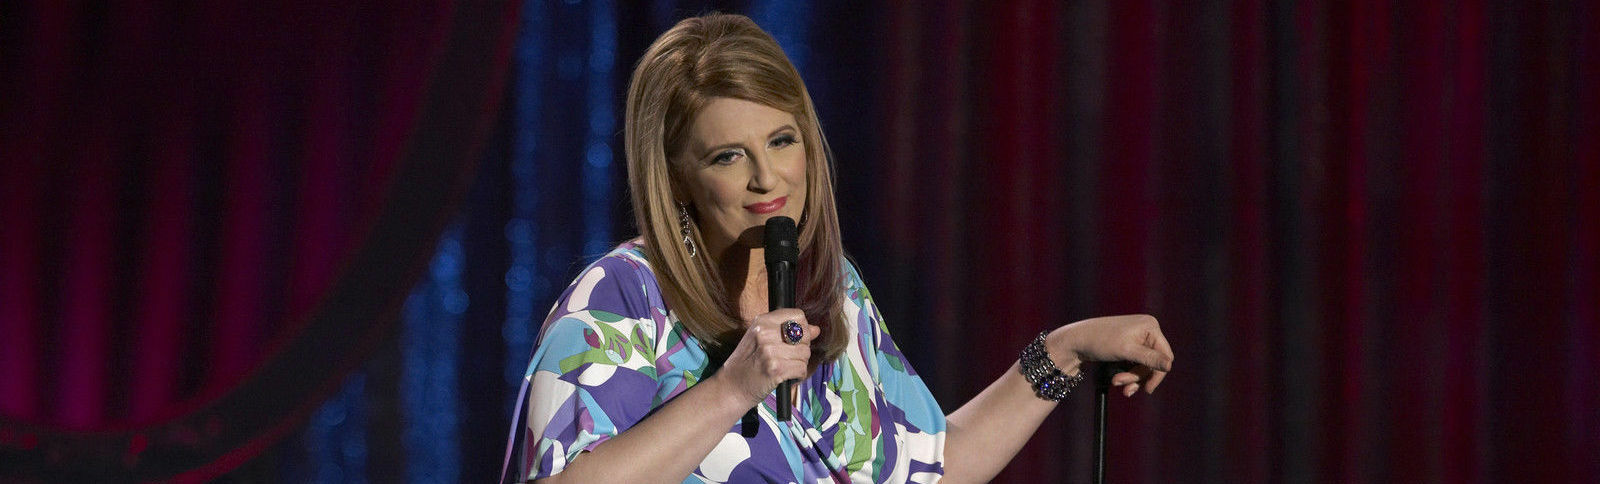 Lisa Lampanelli Tickets (Rescheduled from January 14)